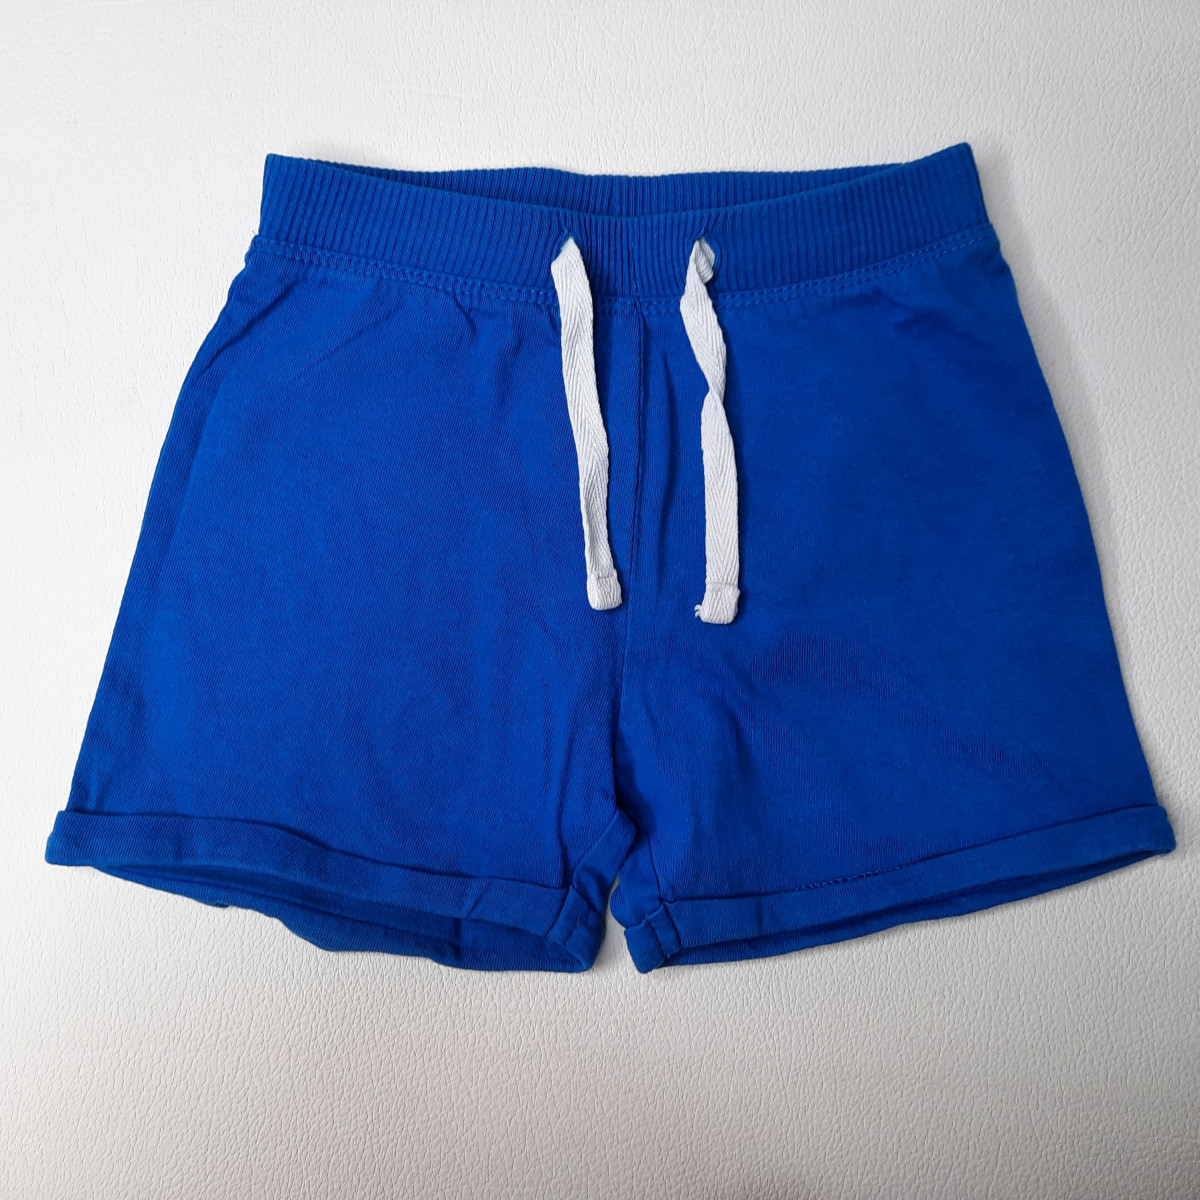 Shorts, Bermudas - photo 26